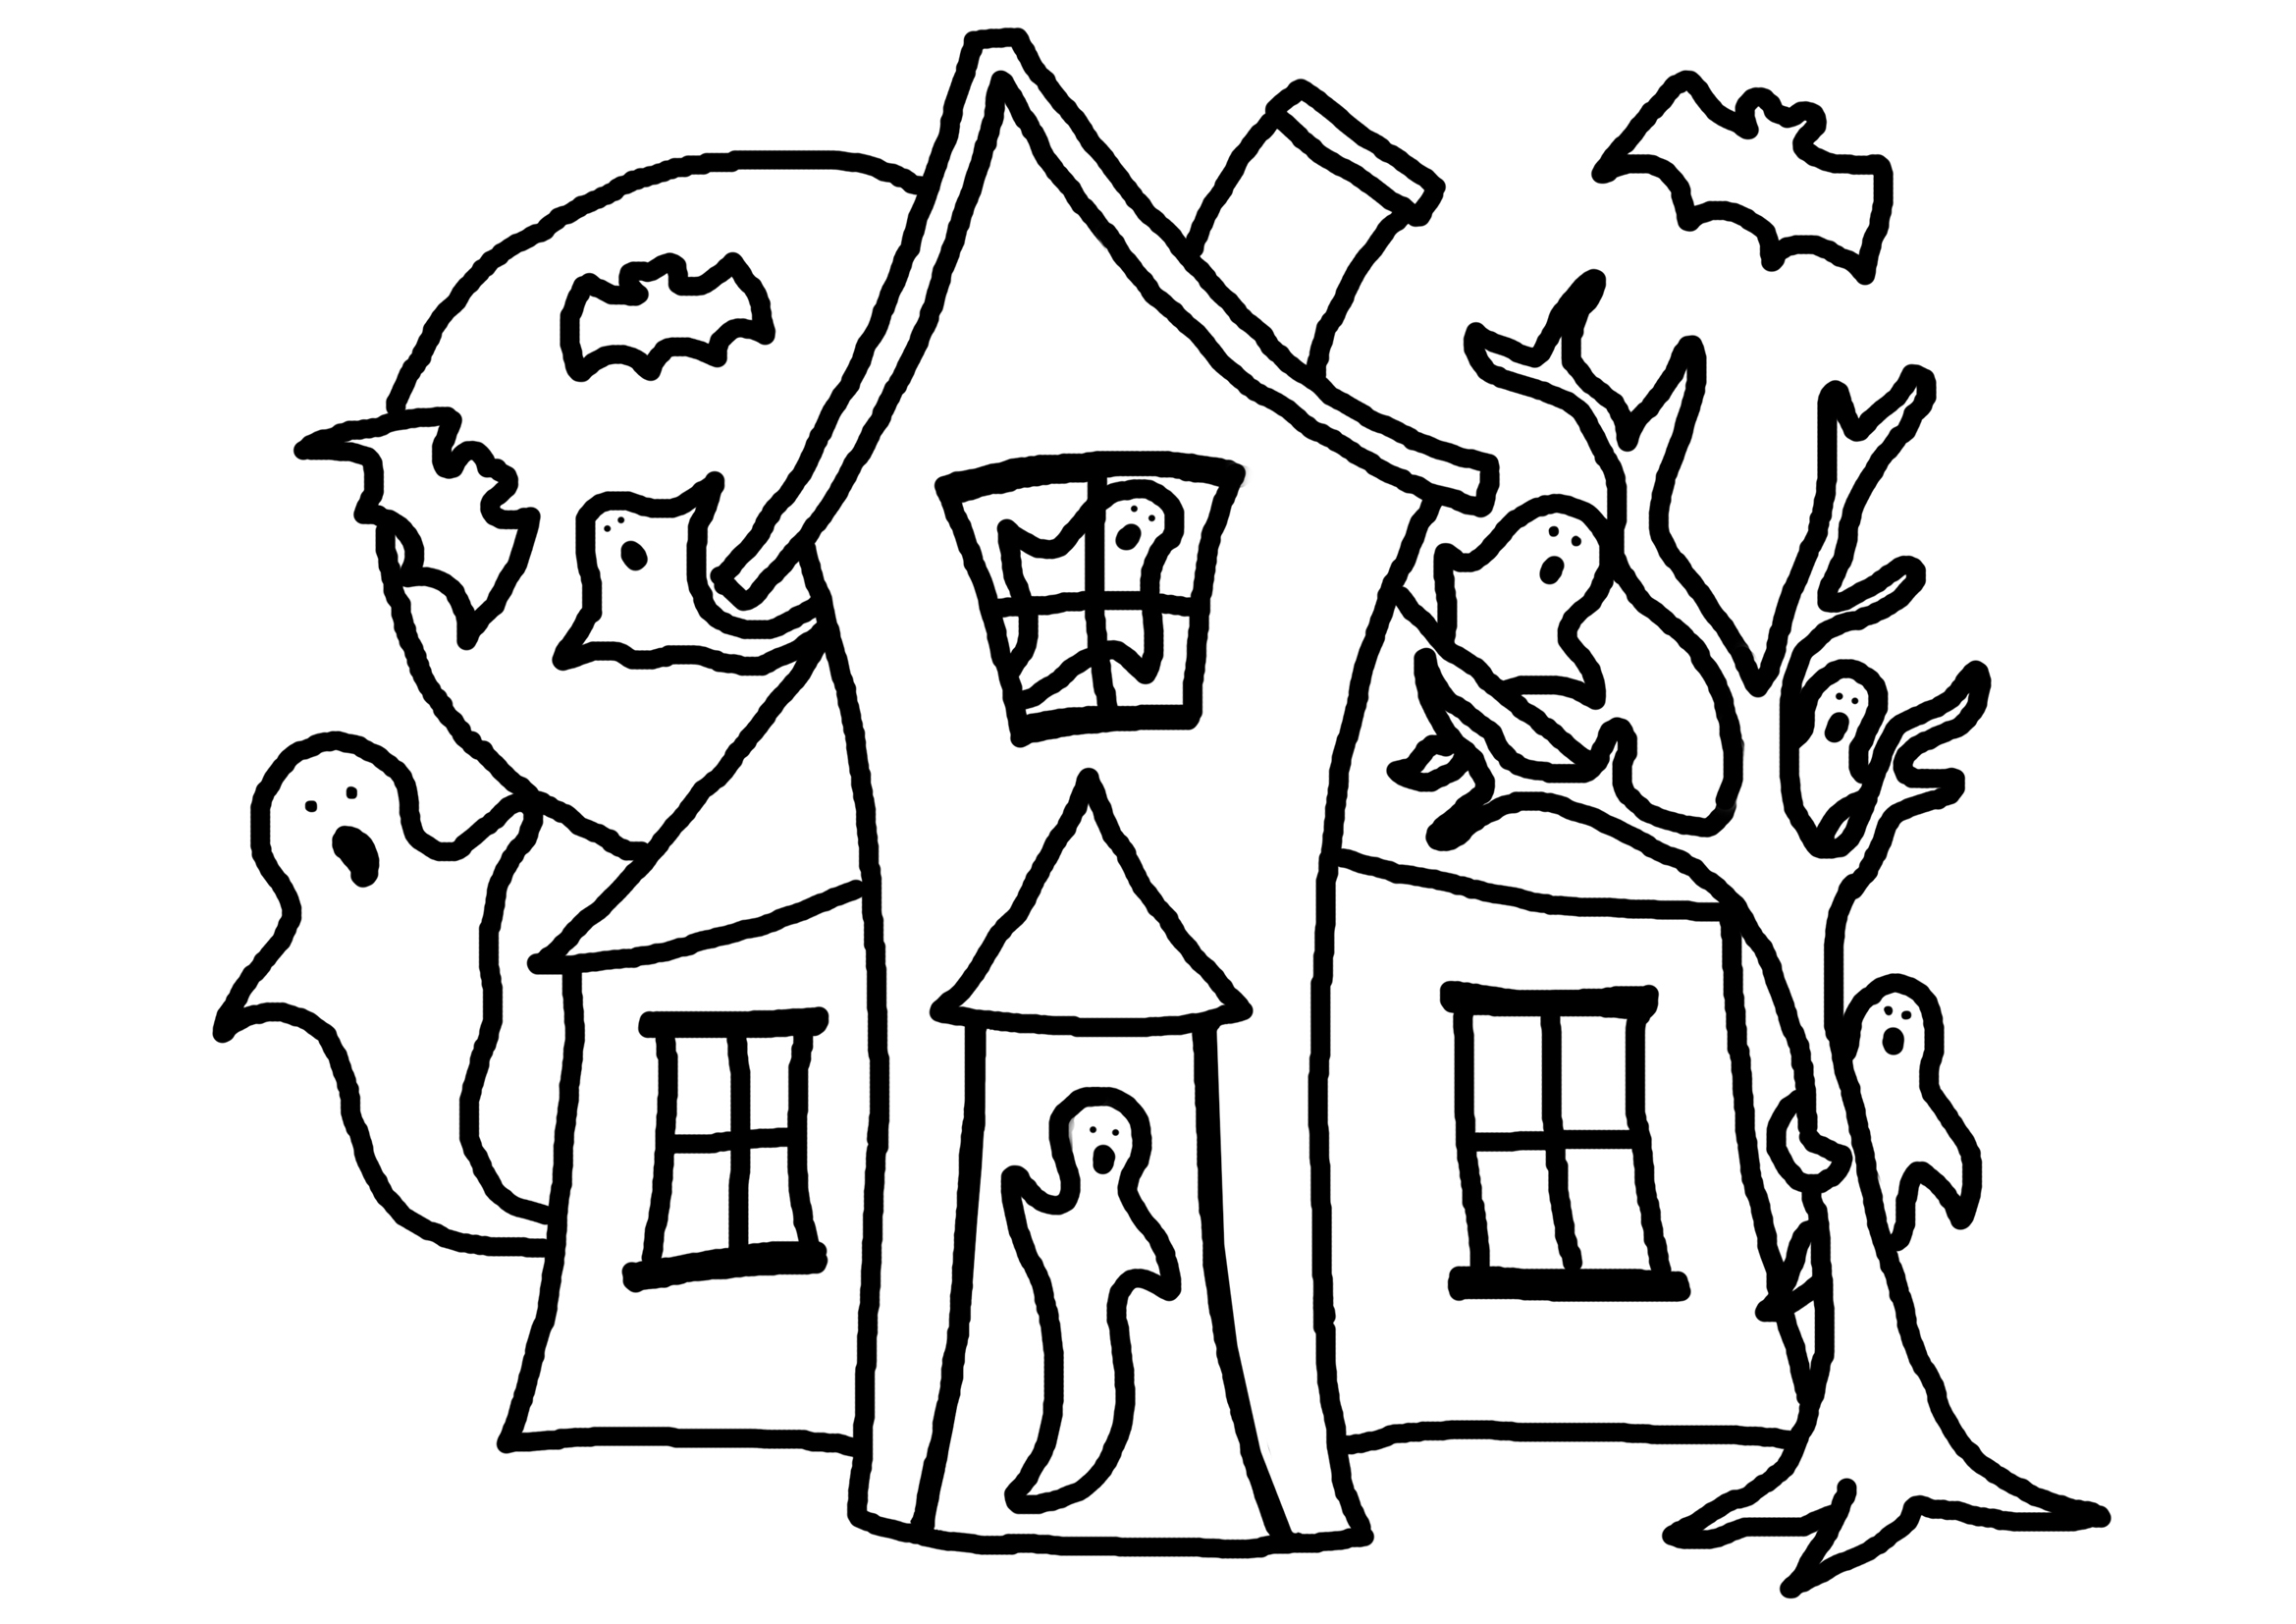 haunted house coloring pages printables free printable haunted house coloring pages for kids pages haunted printables coloring house